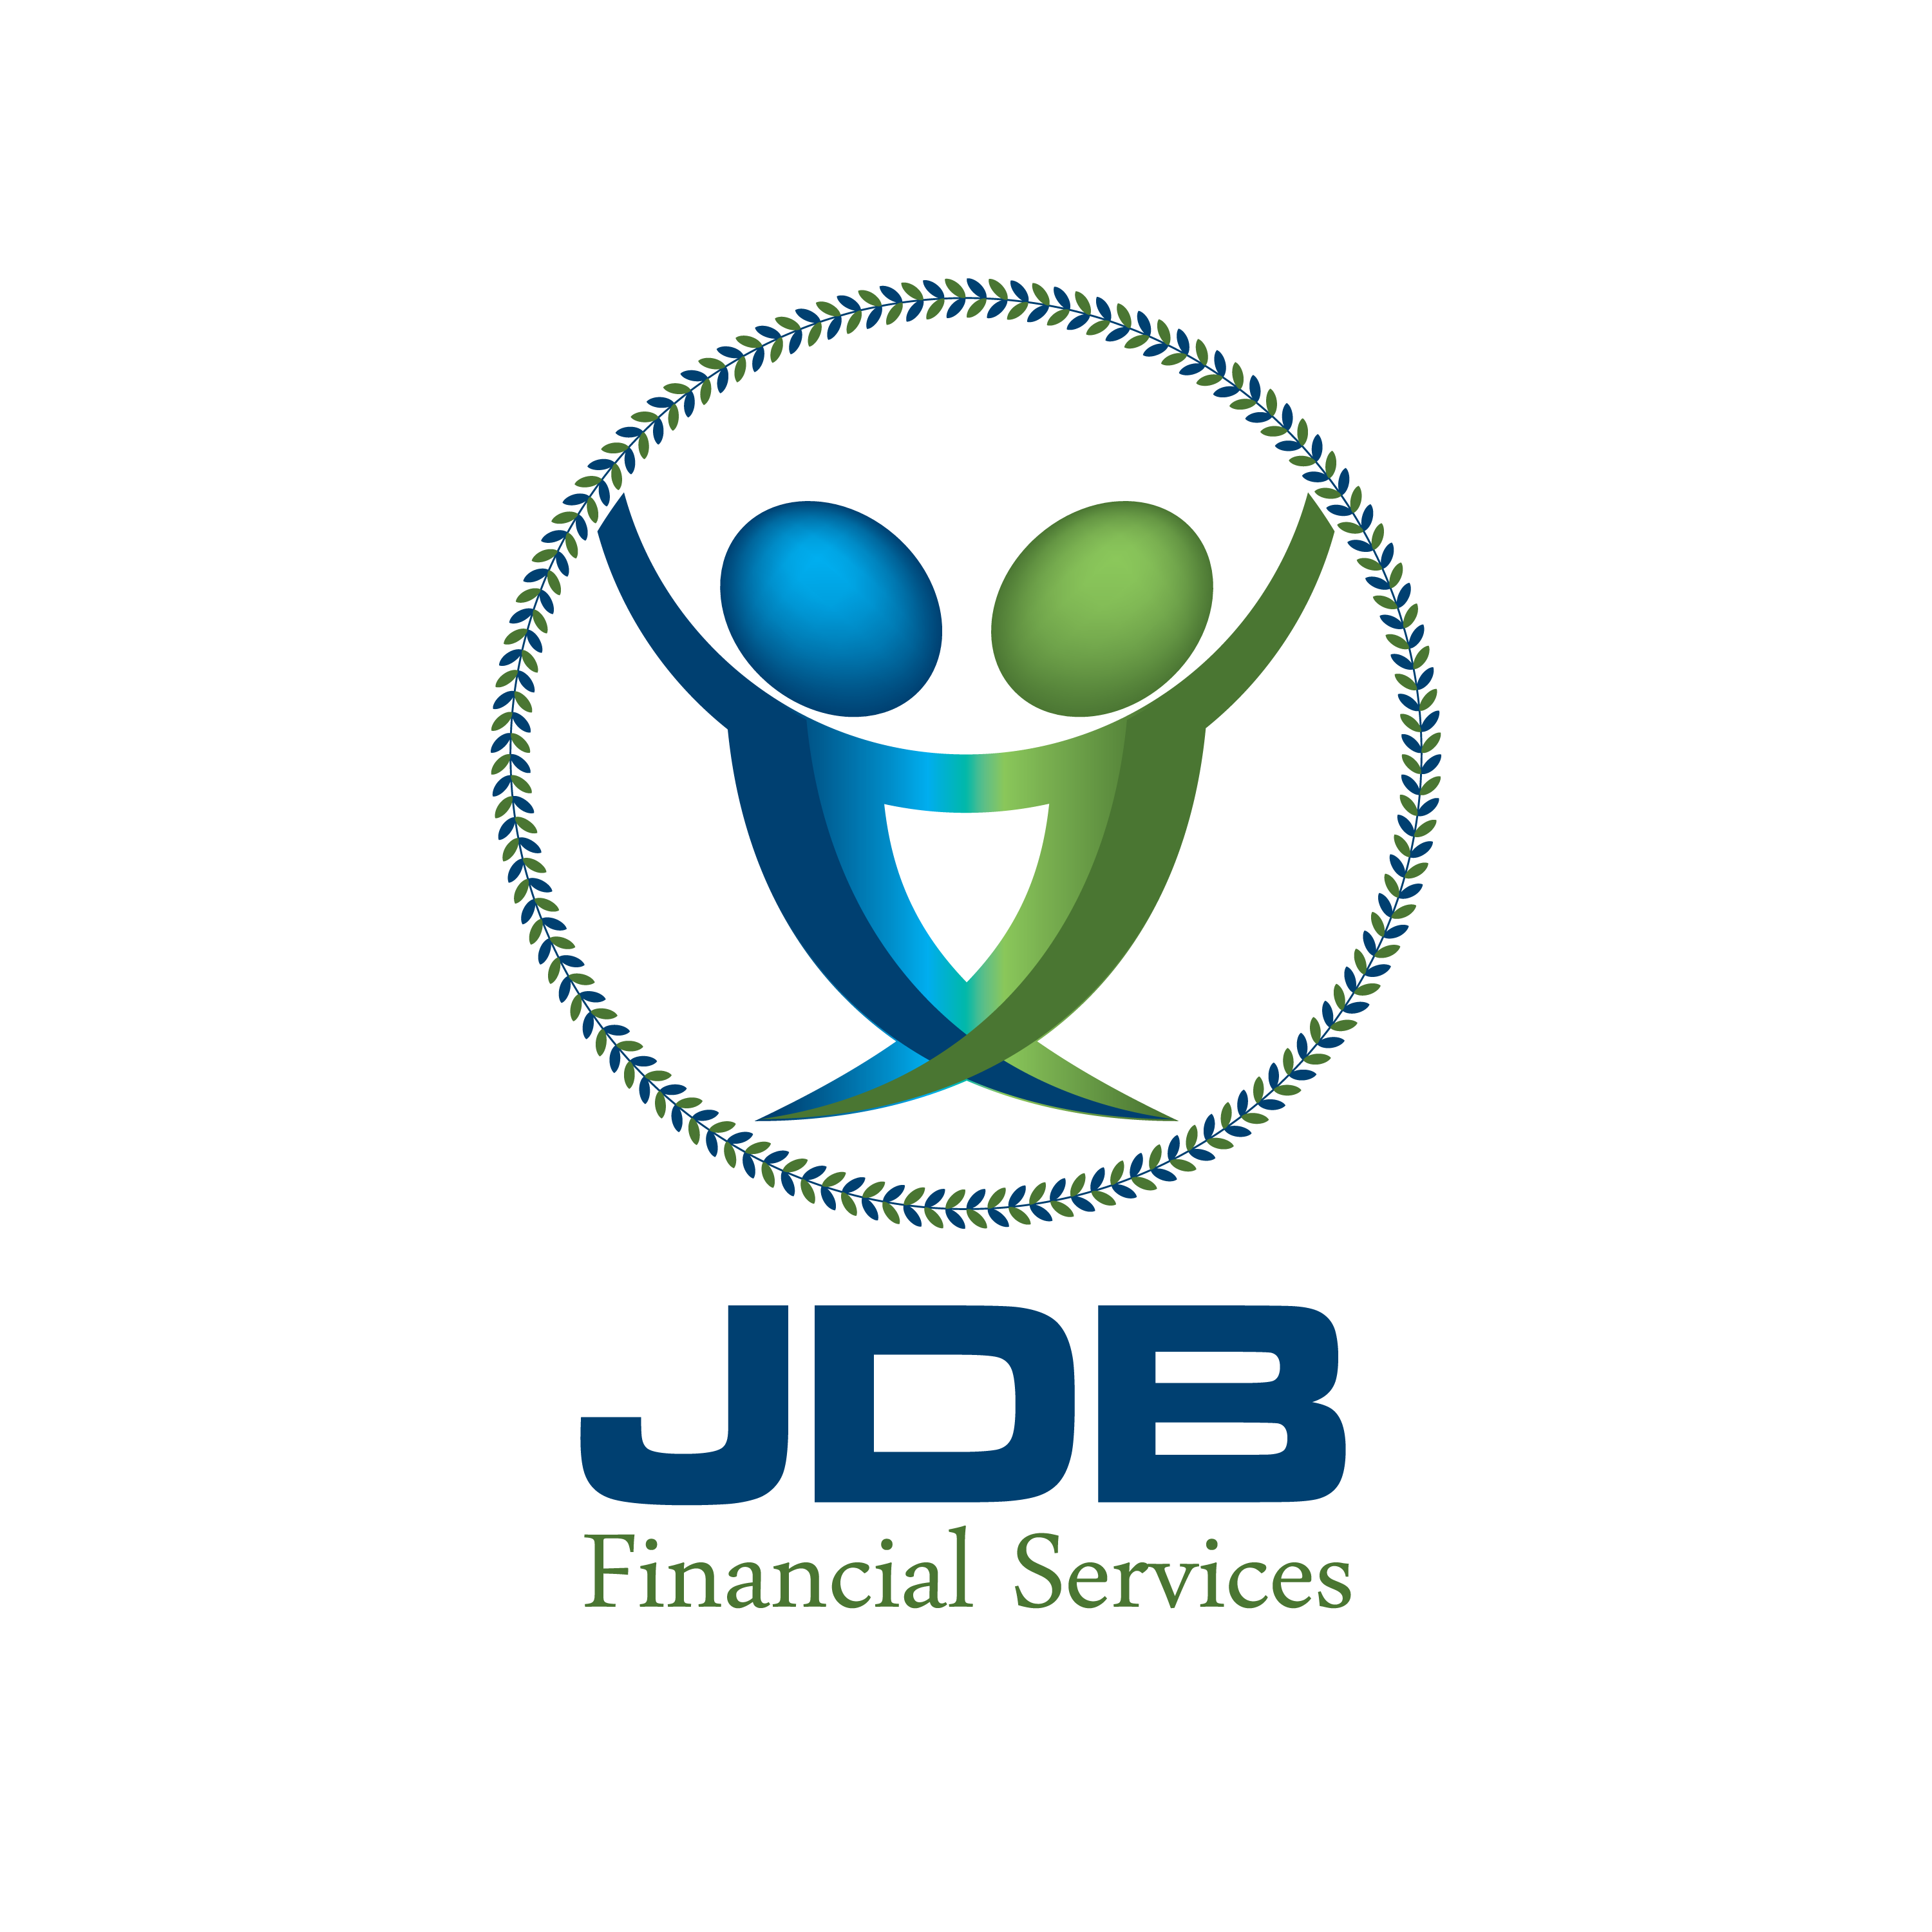 Logo Design by ISaac Law - Entry No. 39 in the Logo Design Contest Unique Logo Design Wanted for JDB Financial Services.